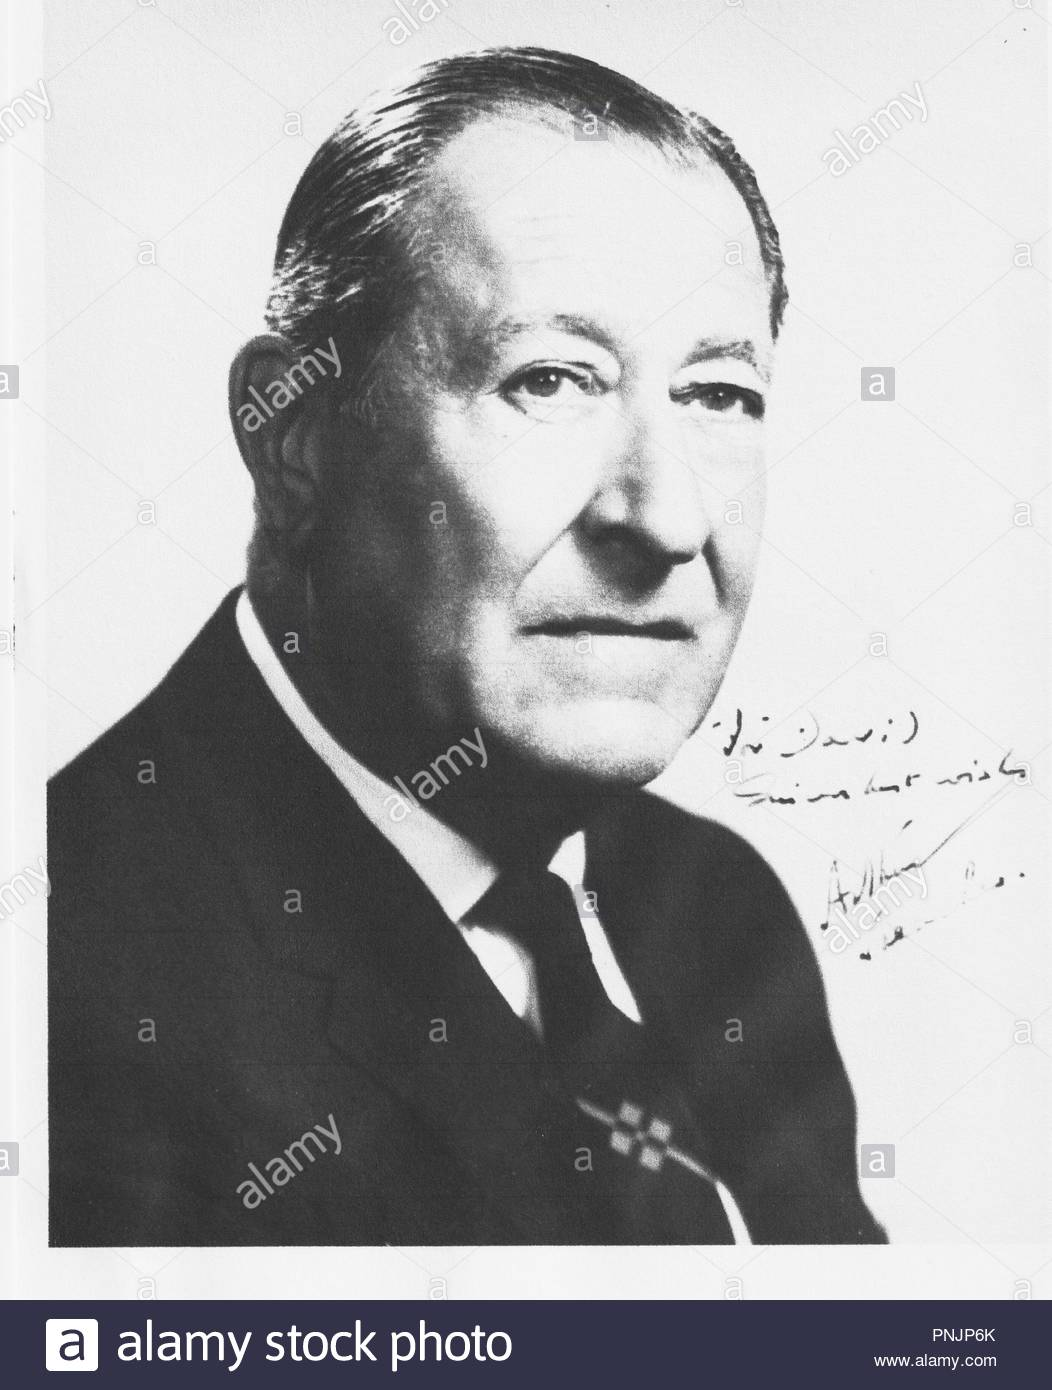 Arthur Treacher (1894?975 (naturalized American citizen)